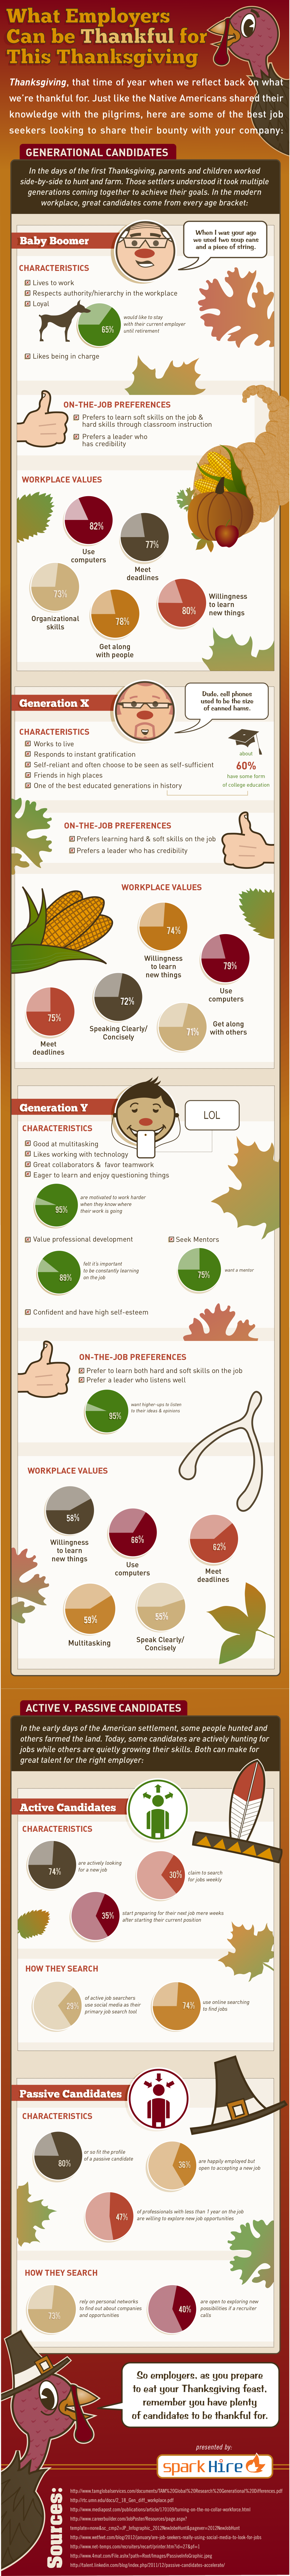 What Employers Can Be Thankful For This Thanksgiving